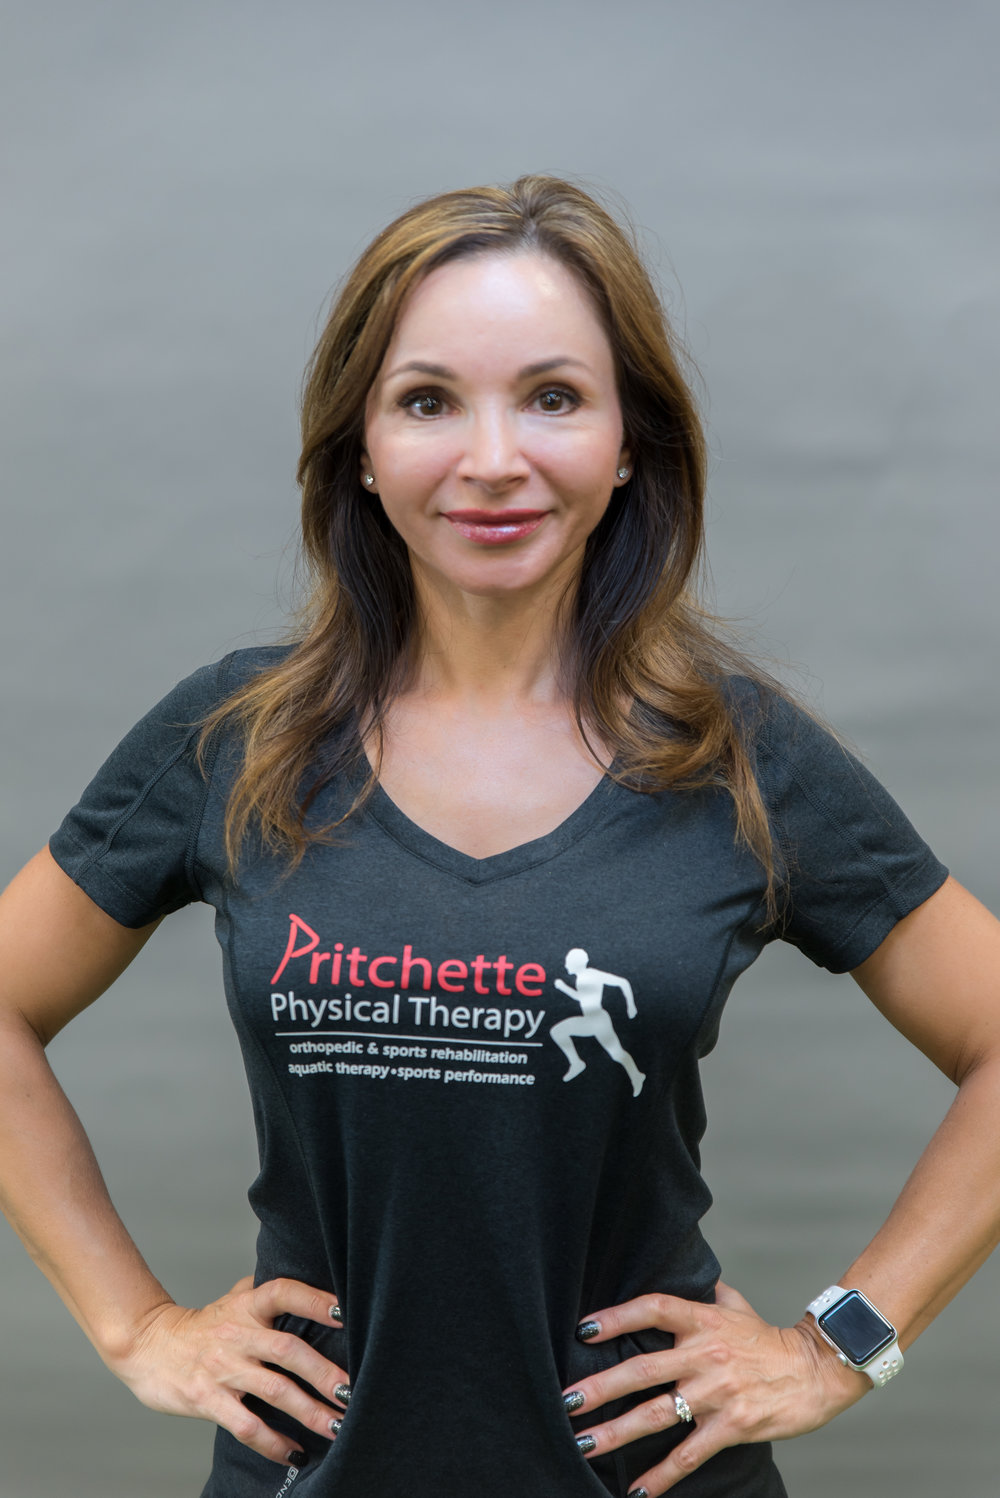 elena-pritchette_director-of-personal-training.jpg